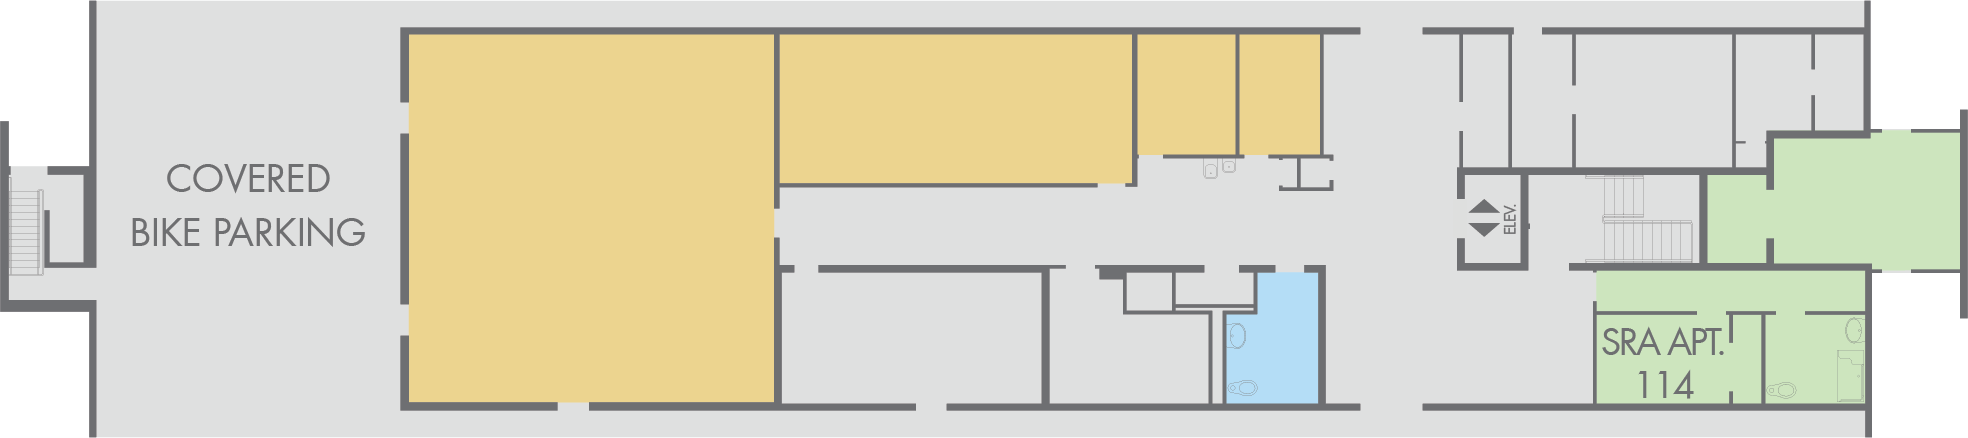 Floor Plan: Gilmore Hall, First Floor